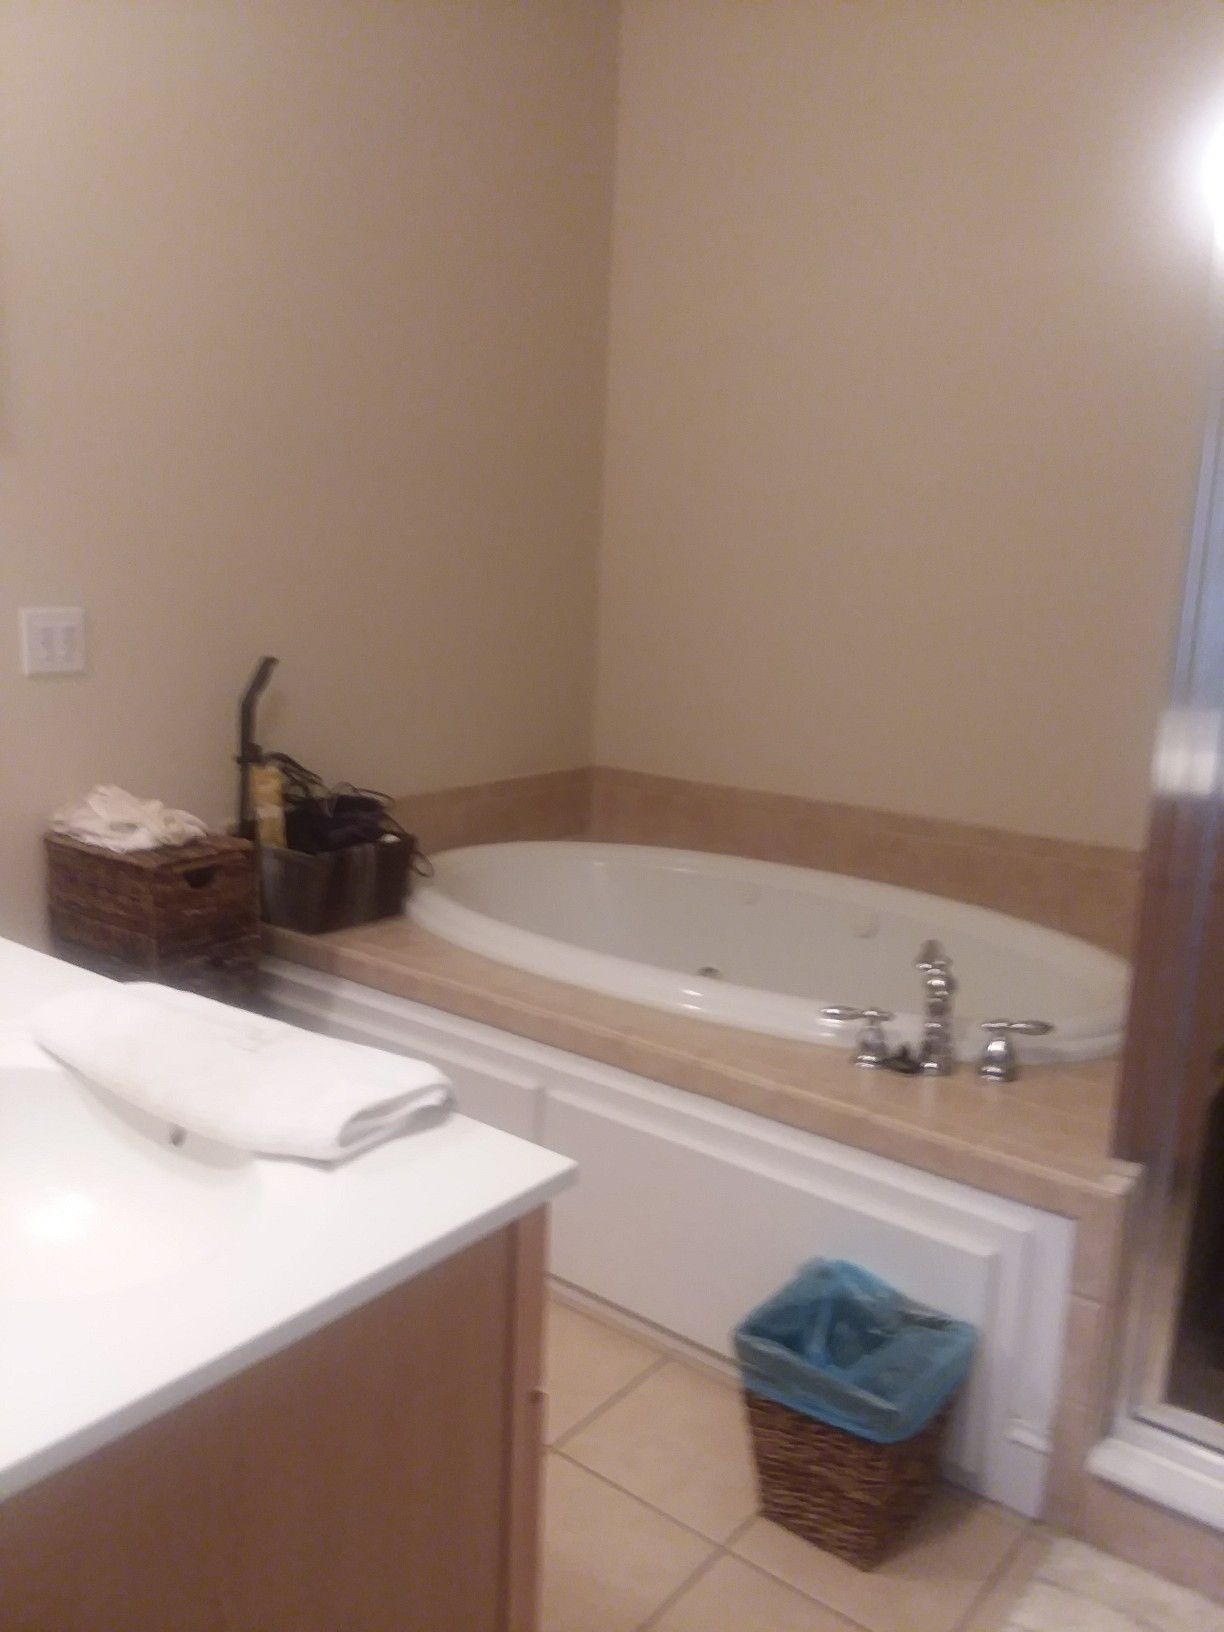 Bathroom Cleansanitized My Cleaning Business Southern Concierge - Bathroom cleaning business